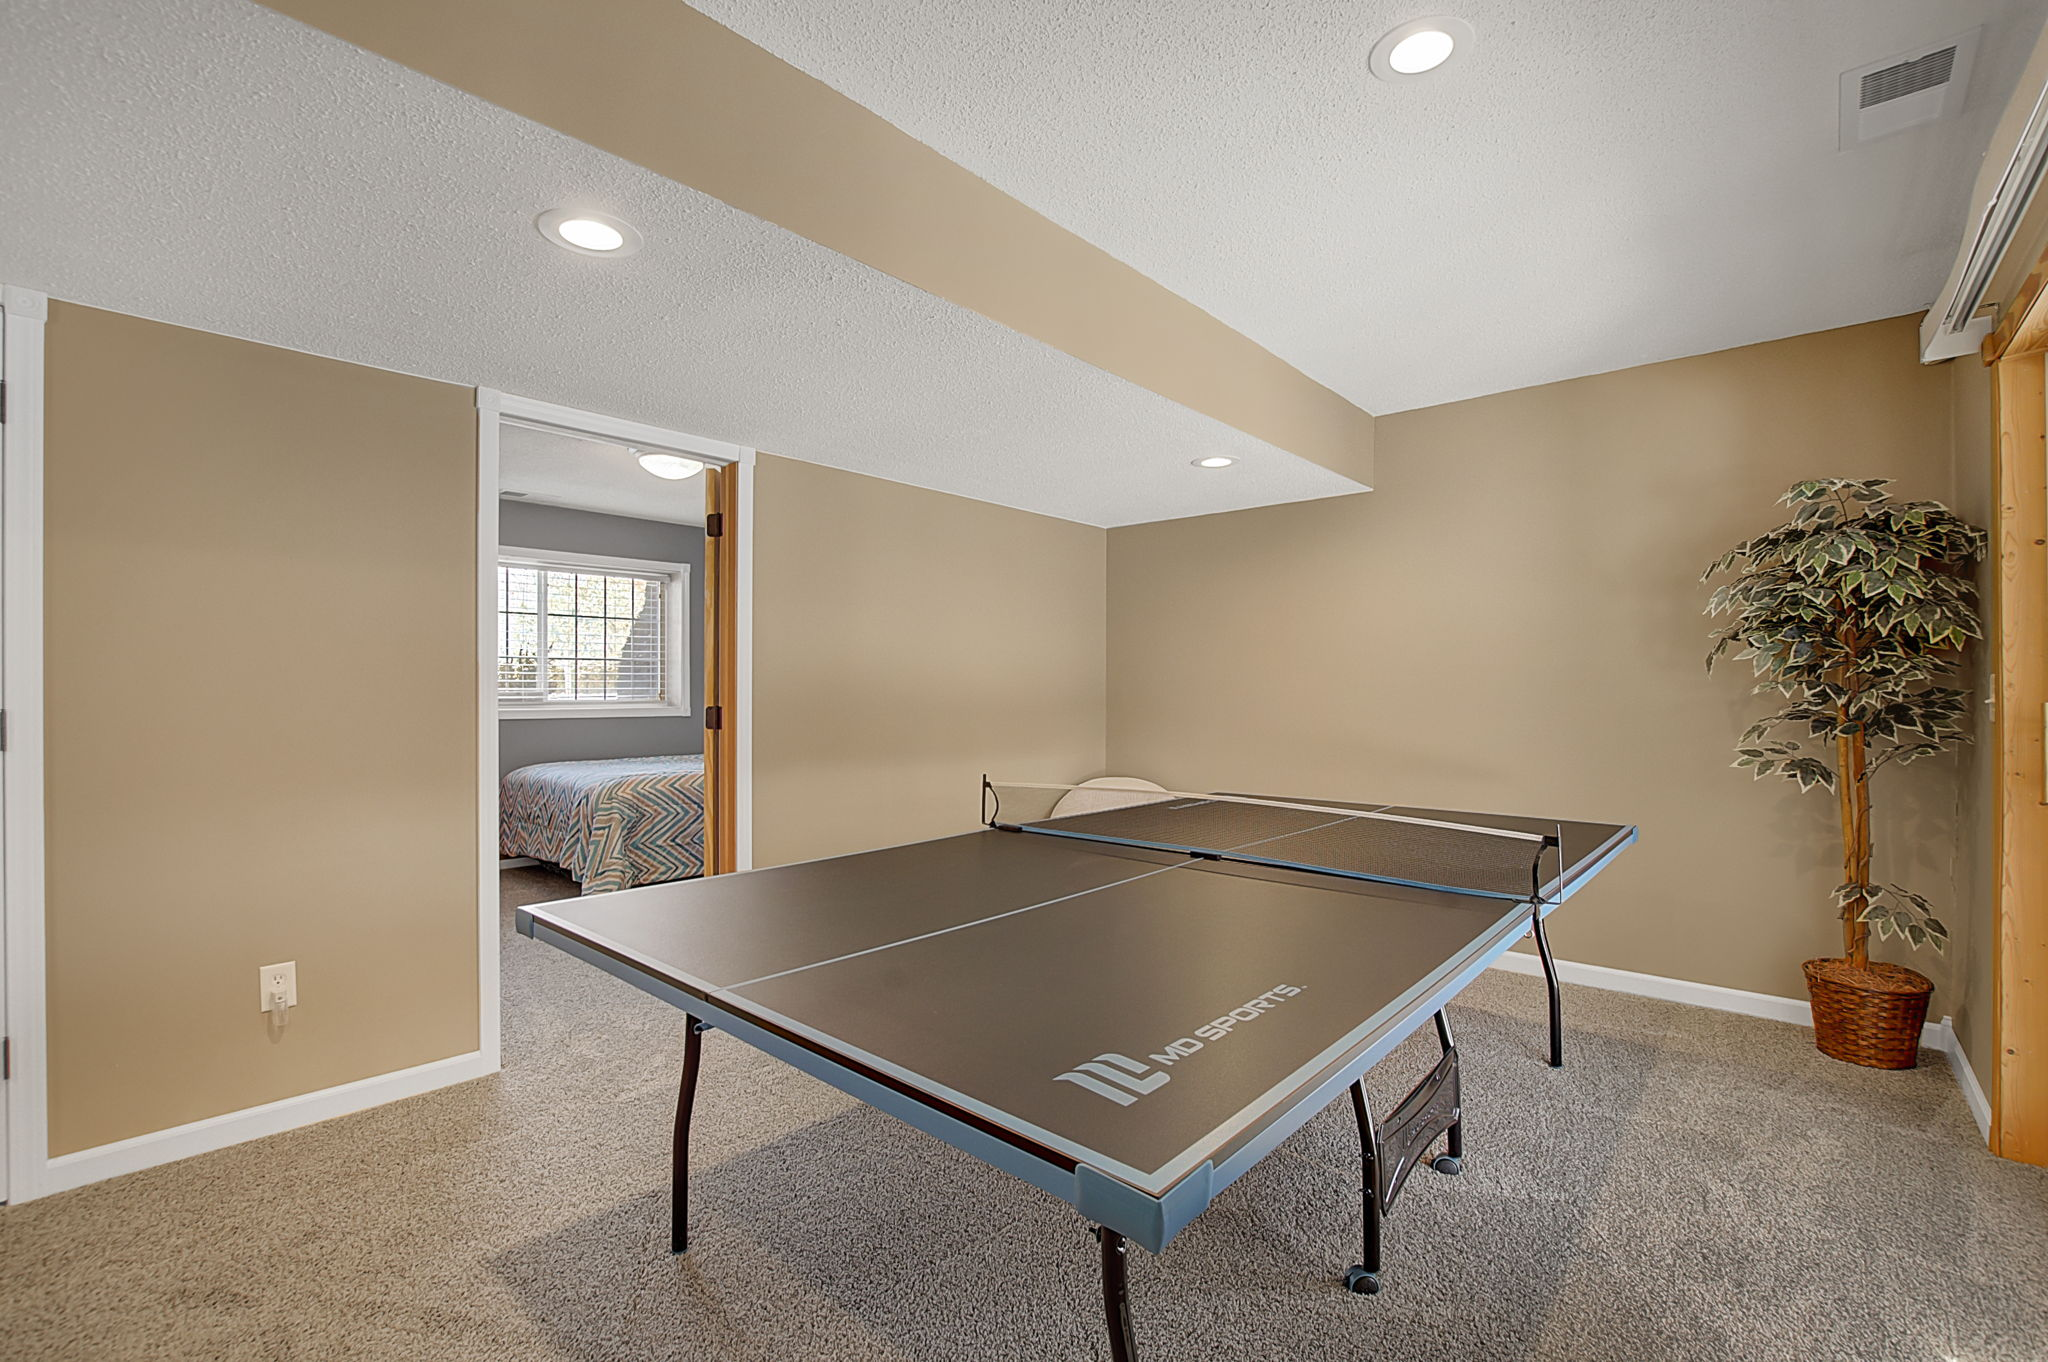 Lower level has room for a ping pong table or create your own space.